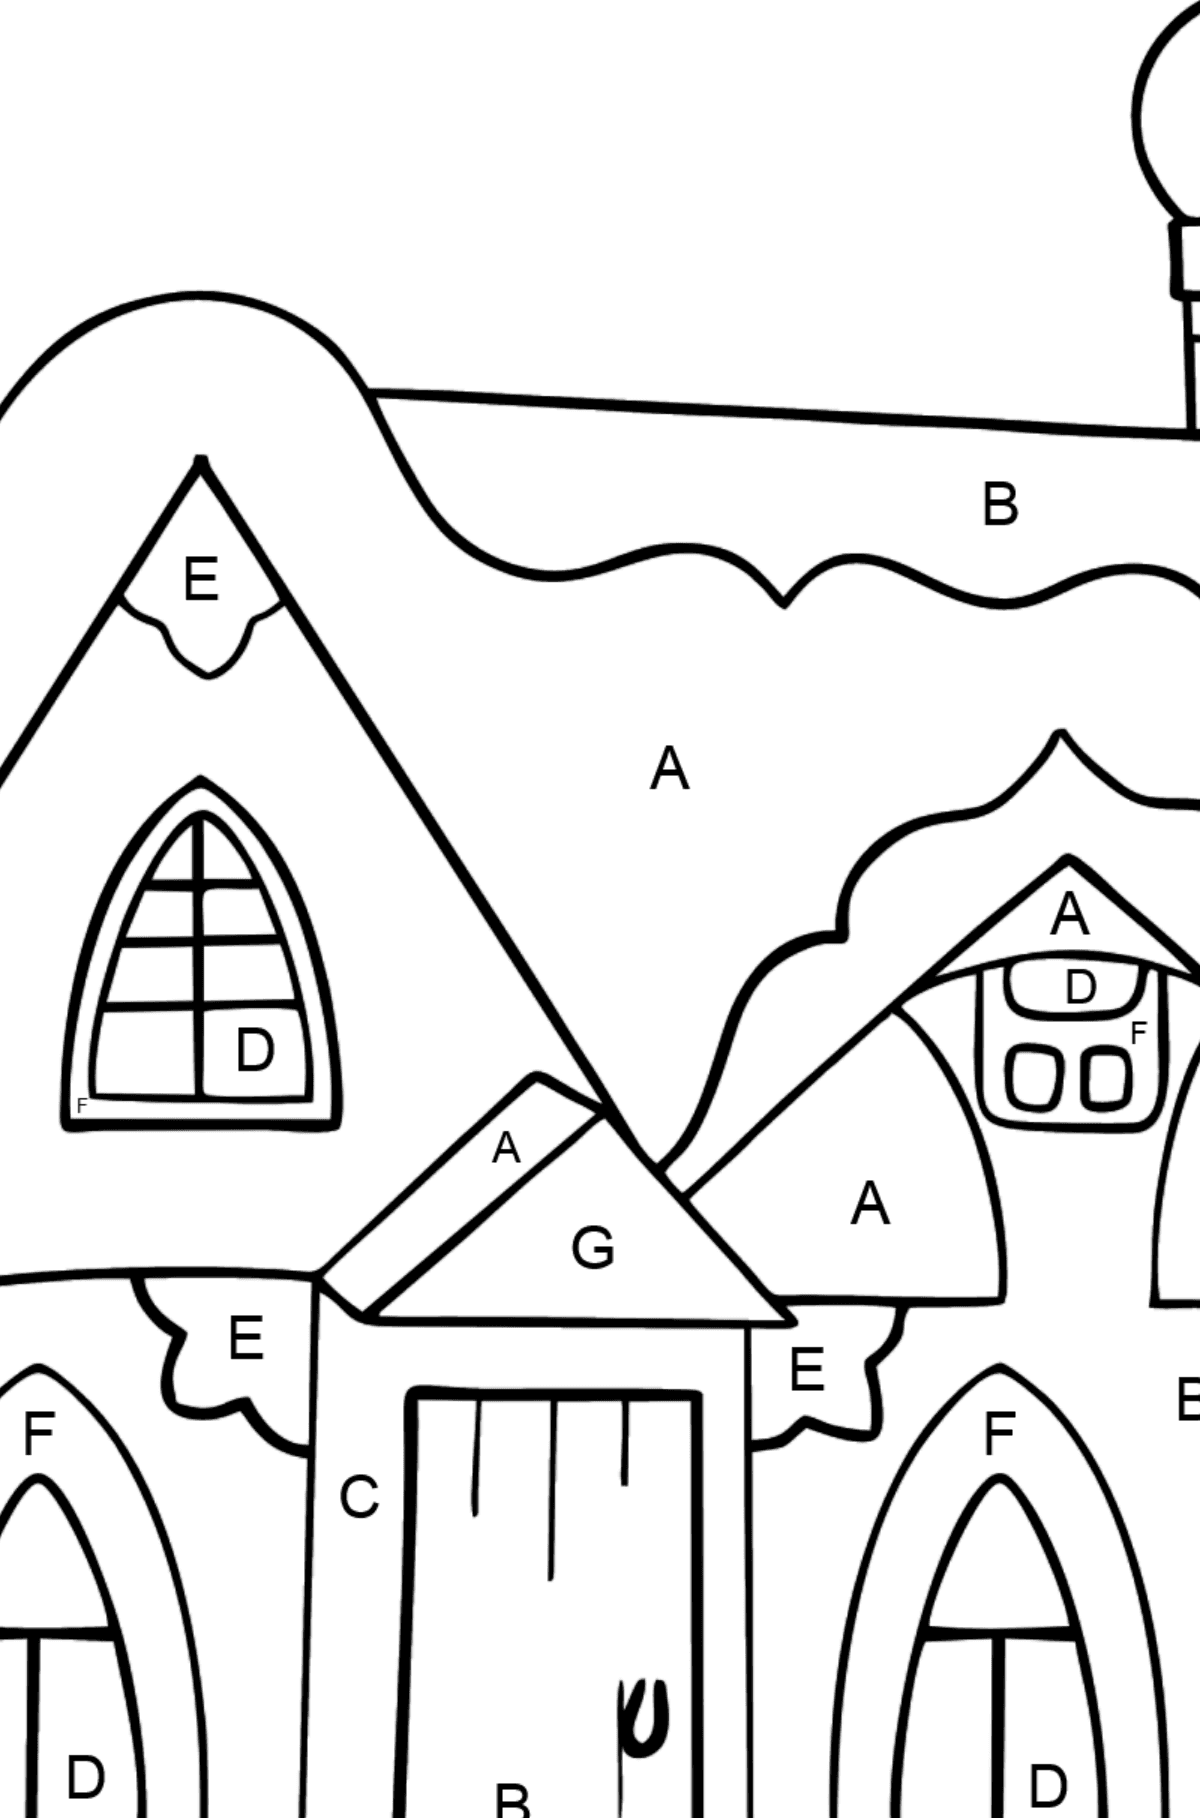 Coloring Page - A Fairytale House - Coloring by Letters for Kids